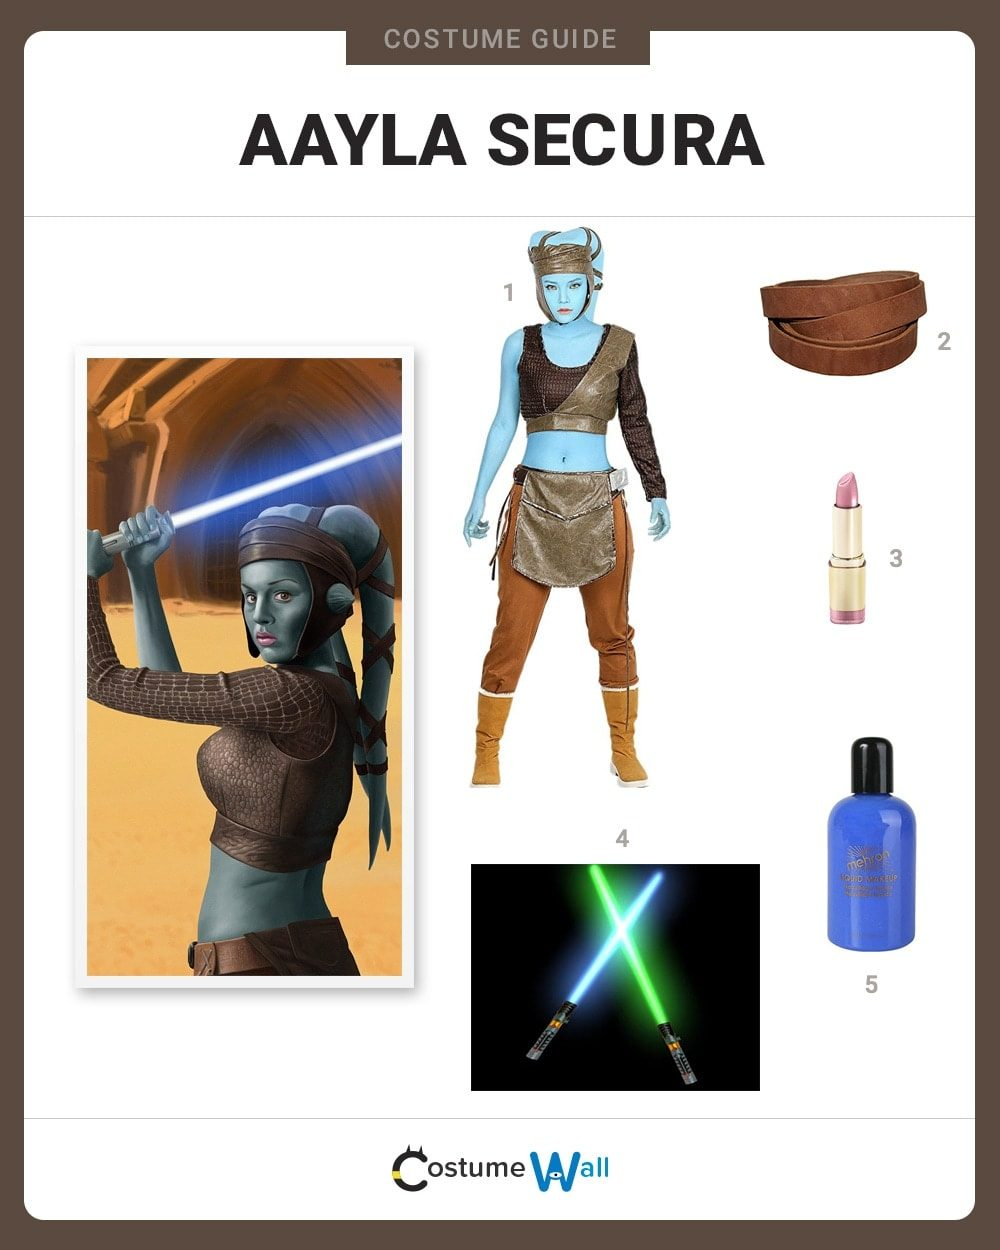 Aayla Secura Costume Guide